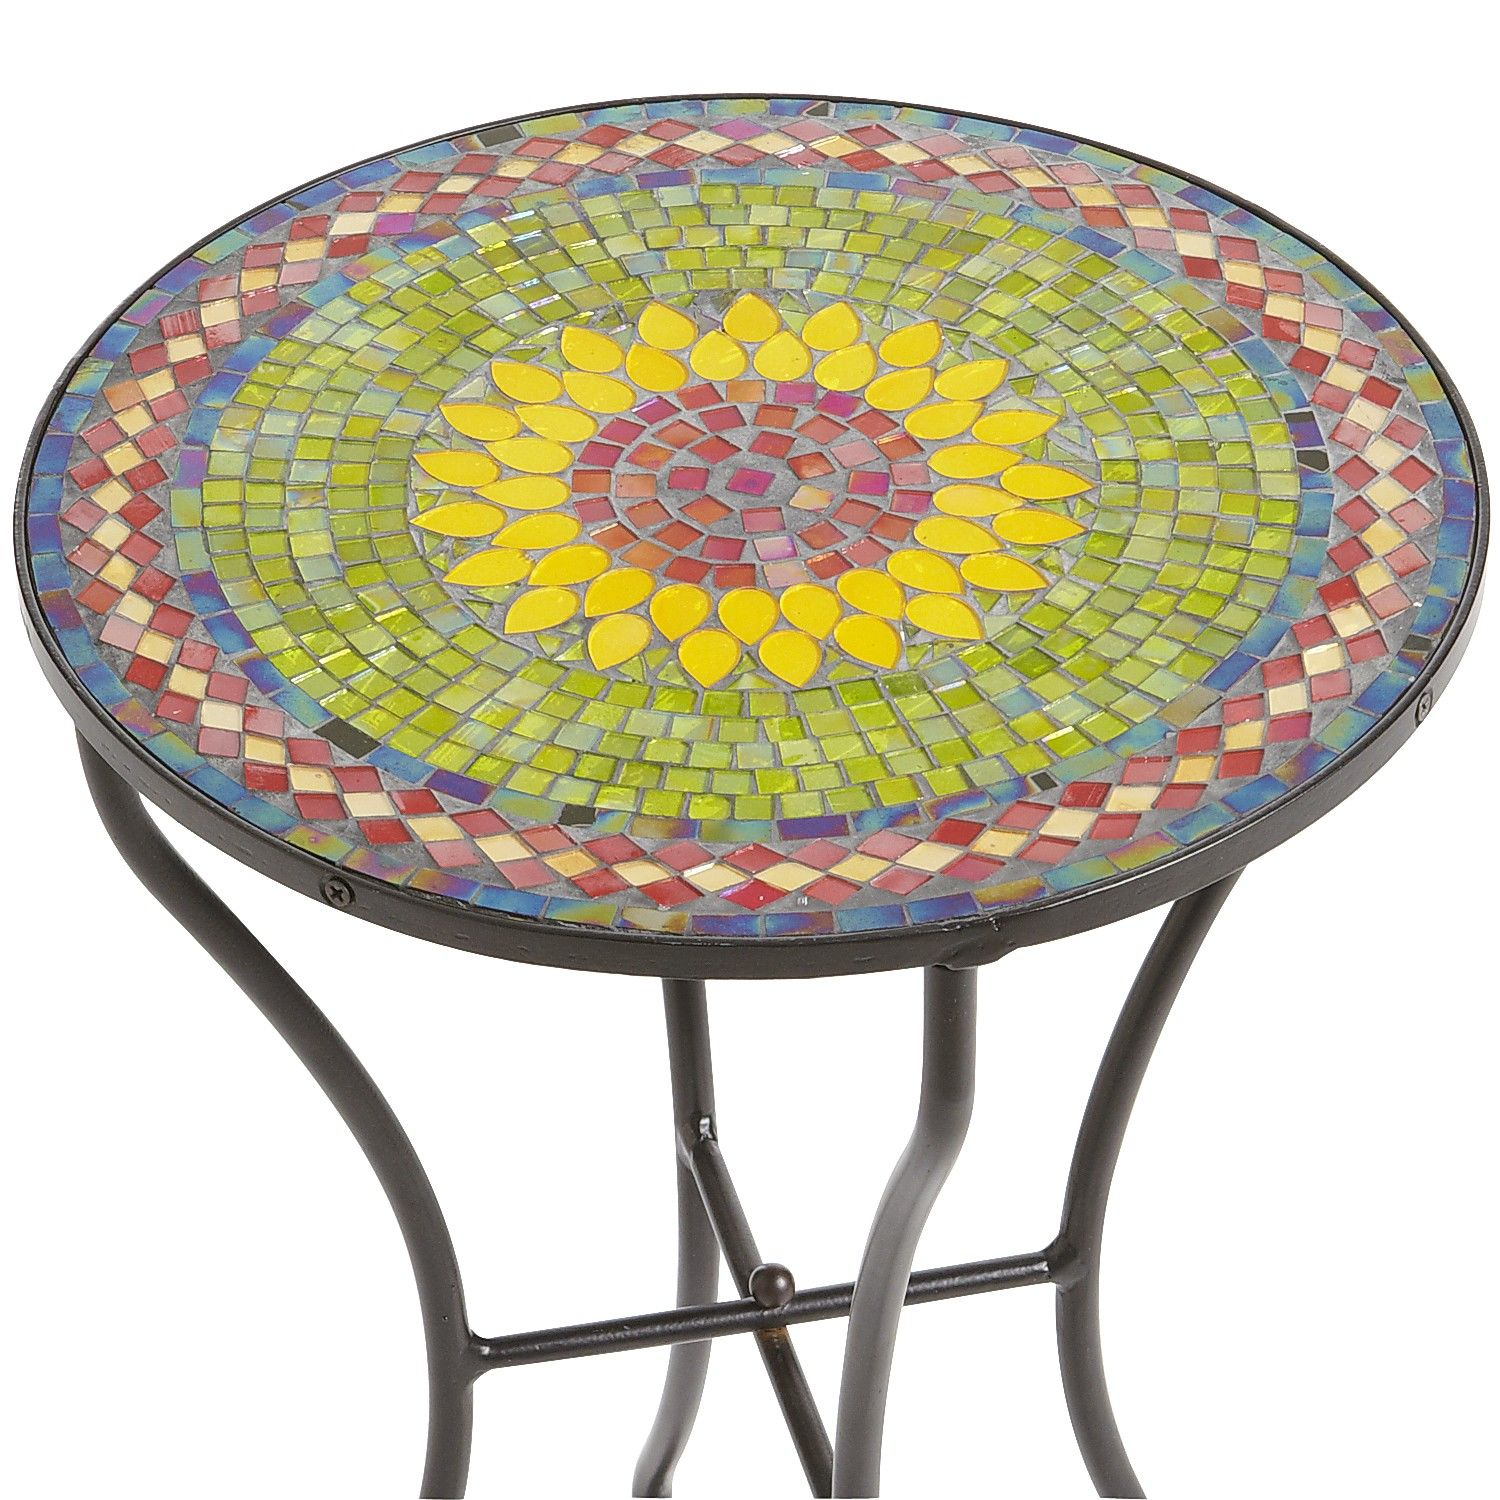 sunflower mosaic accent table pier imports bombay tables indoor white porcelain lamp circular entry gold coloured lamps outdoor furniture grey kitchen chairs blue runner tuscan